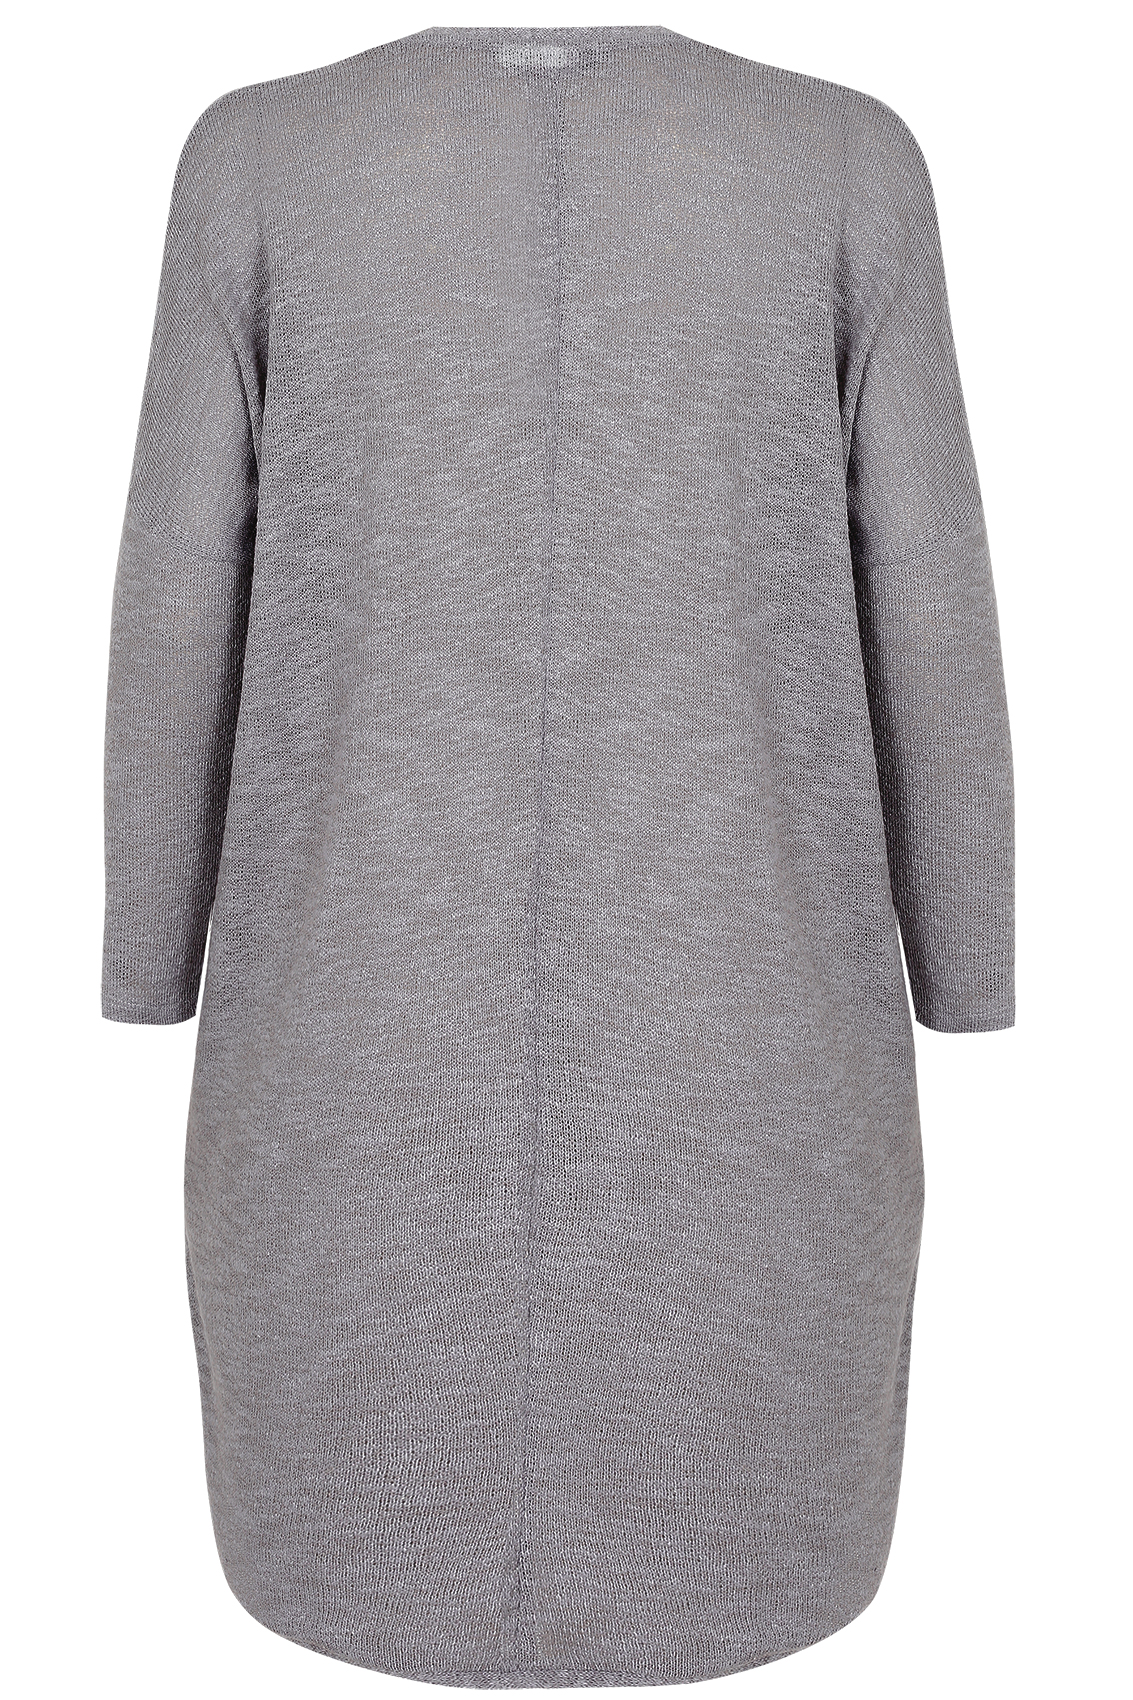 Grey Knitted Longline Cocoon Cardigan With Drop Shoulder Sleeves ...